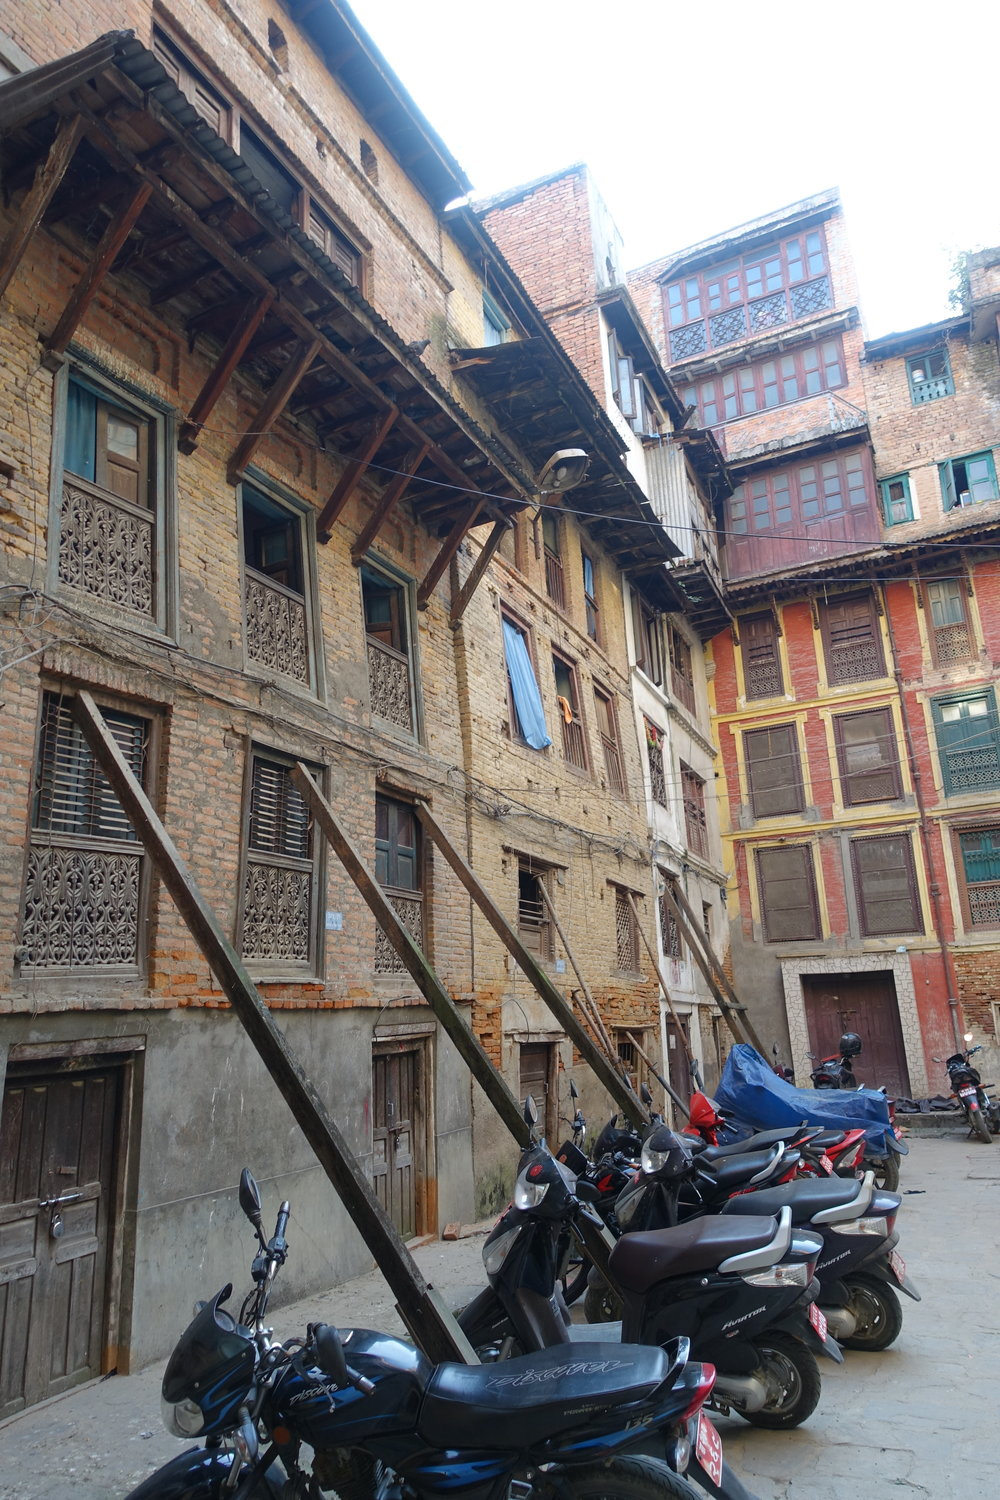 The leaning walls of many homes - and quite a few temples - are temporarily (since 2015!) reinforced